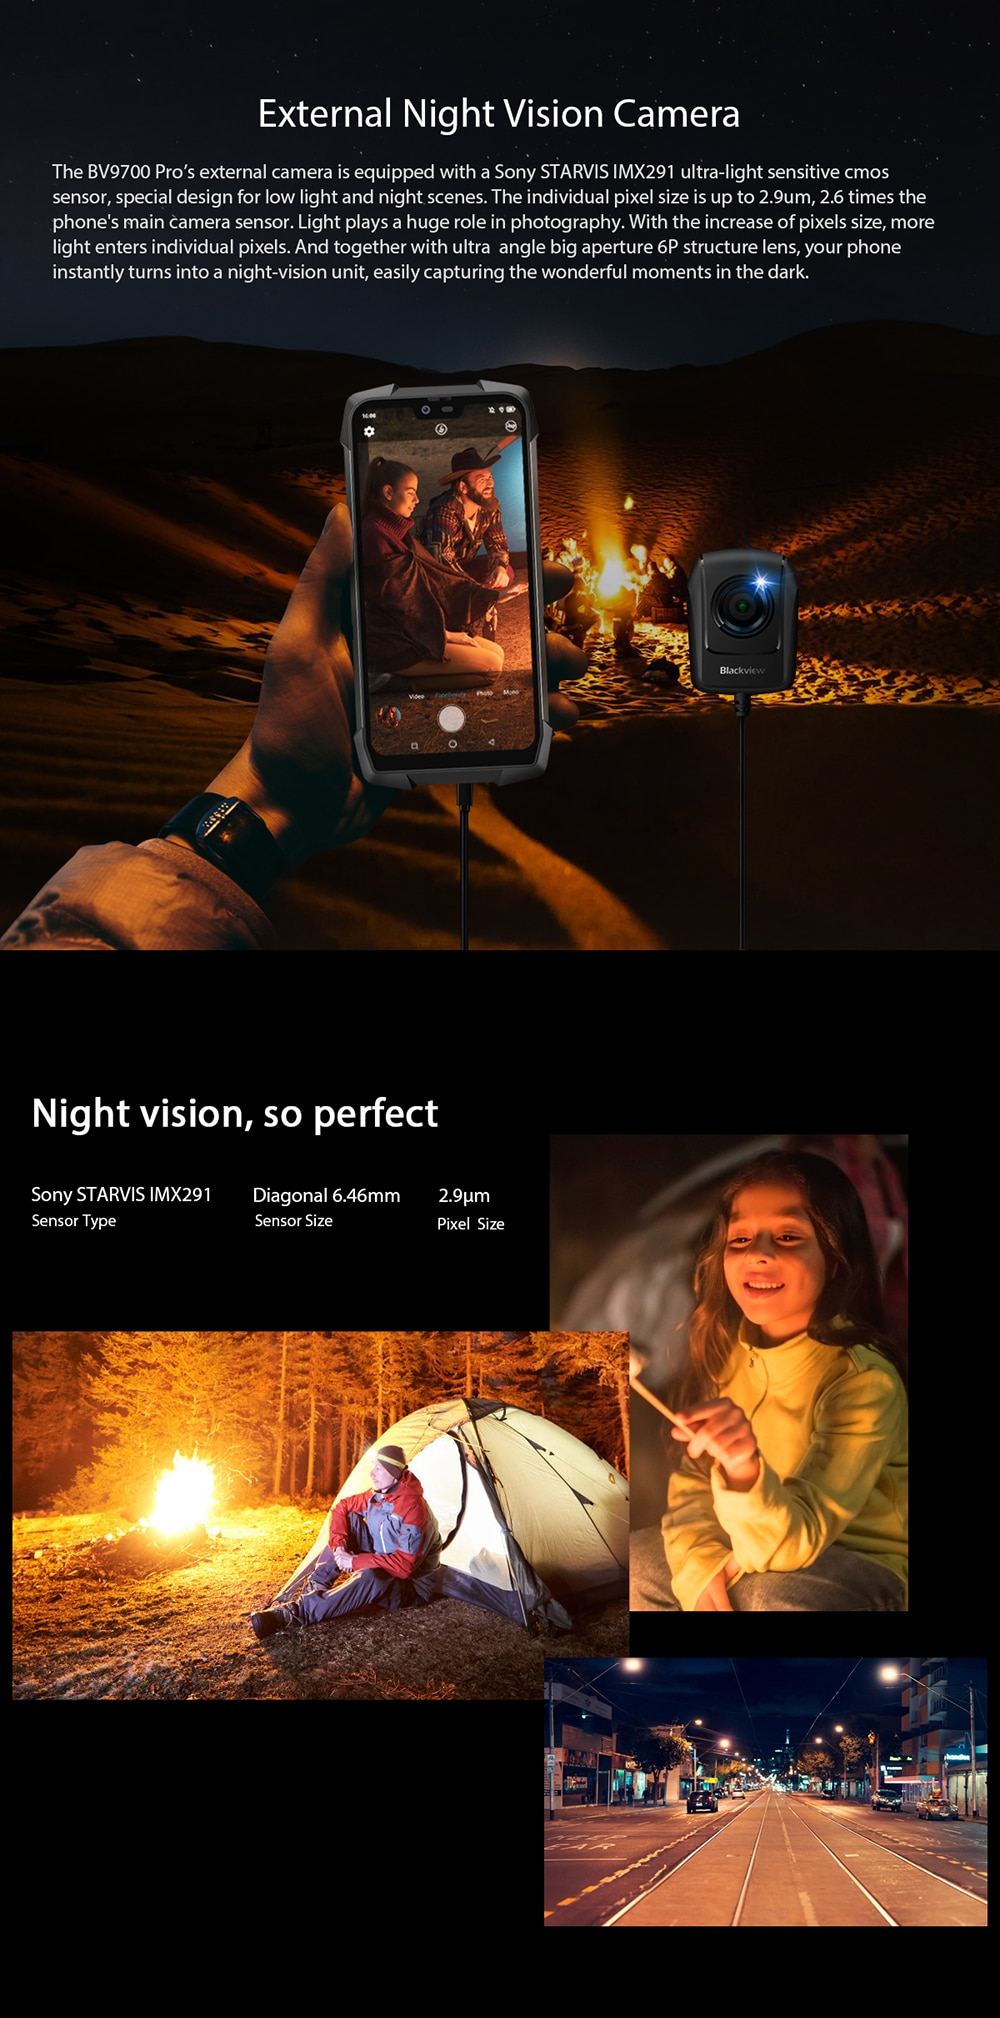 HTB1DSHBXgFY.1VjSZFnq6AFHXXab - Blackview BV9700 Pro IP68 Rugged Mobile Phone Helio P70 Octa Core 6GB 128GB Android 9.0 16MP 8MP Night Vision Camera Smartphone